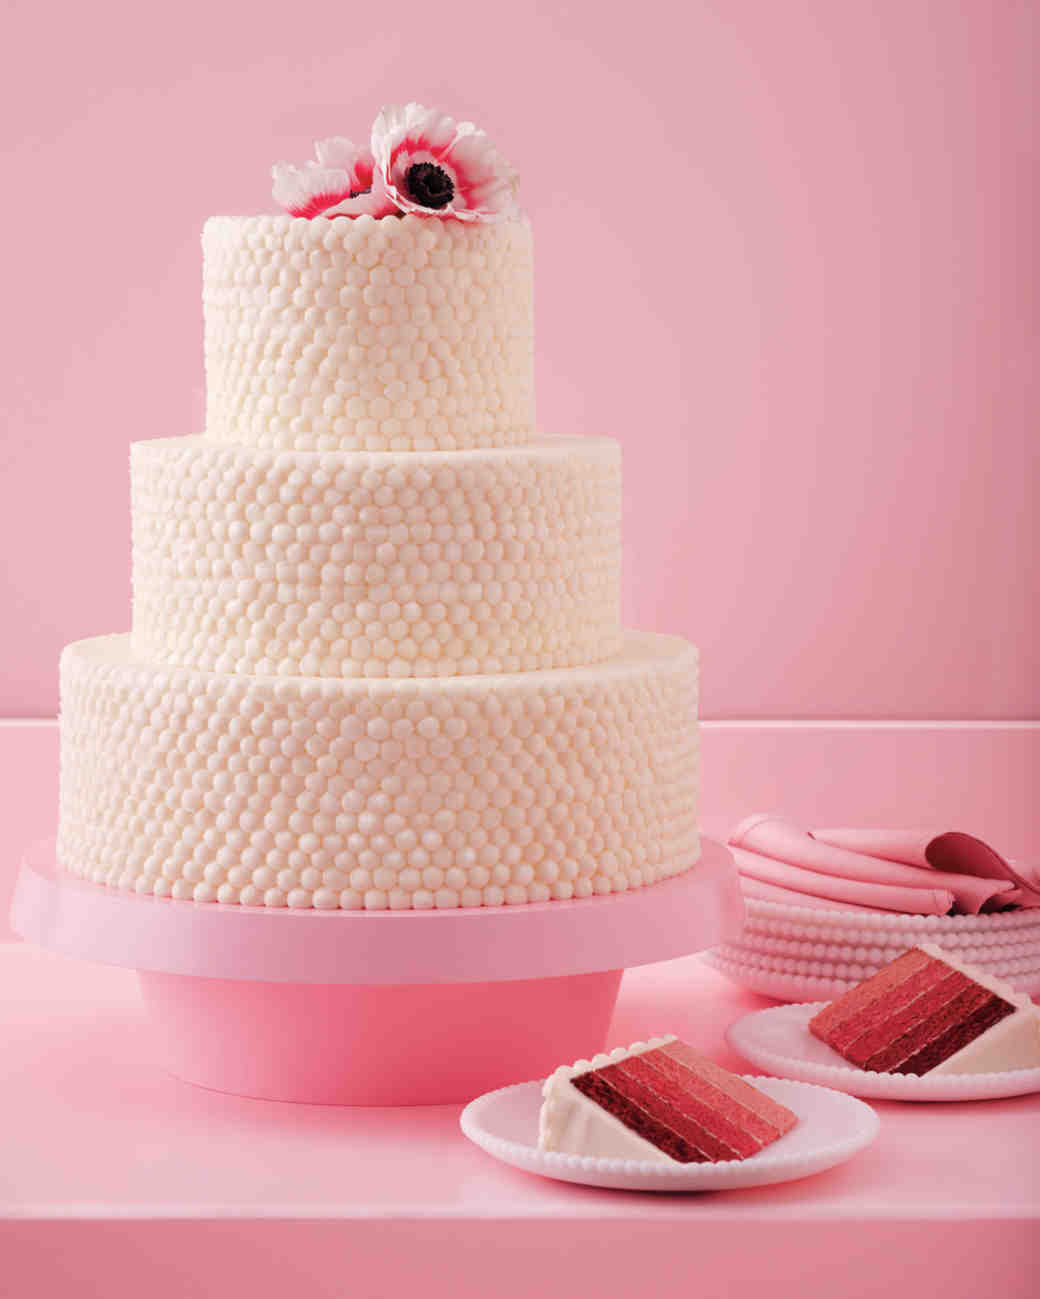 15 Red Velvet Wedding Cakes & Confections | Martha Stewart Weddings